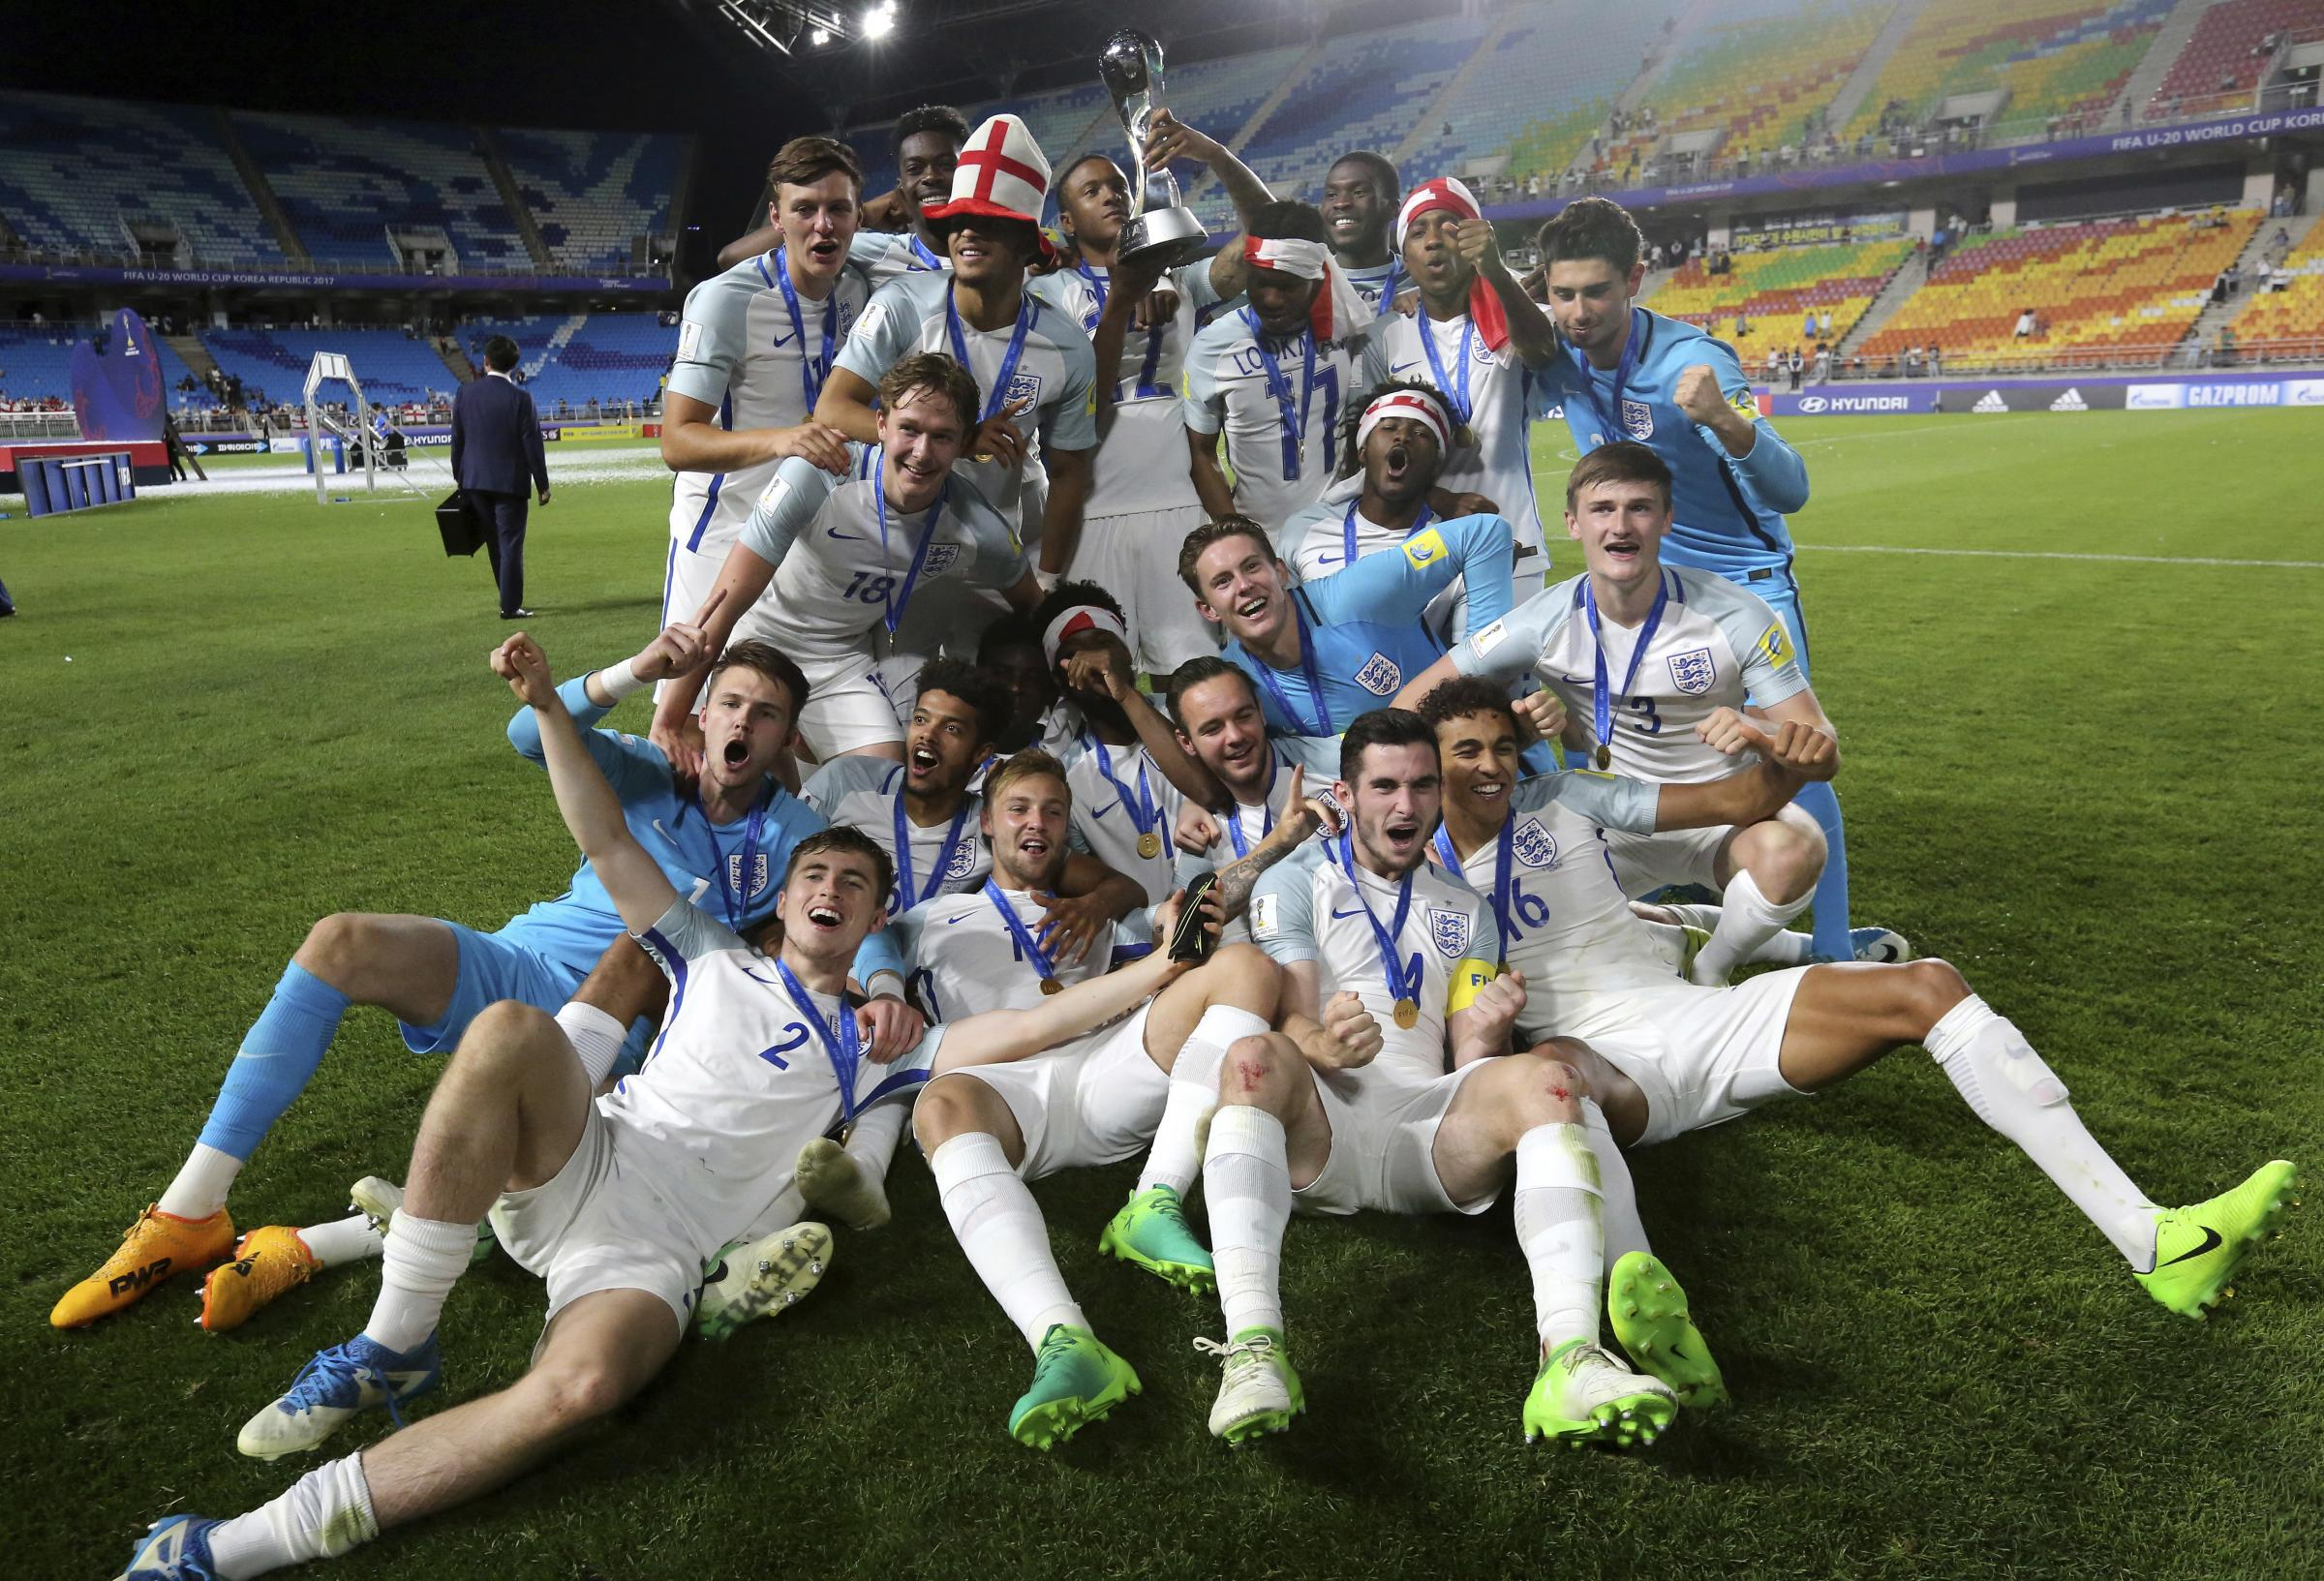 England beat Venezuela to become Federation Internationale de Football Association U-20 World Cup champions